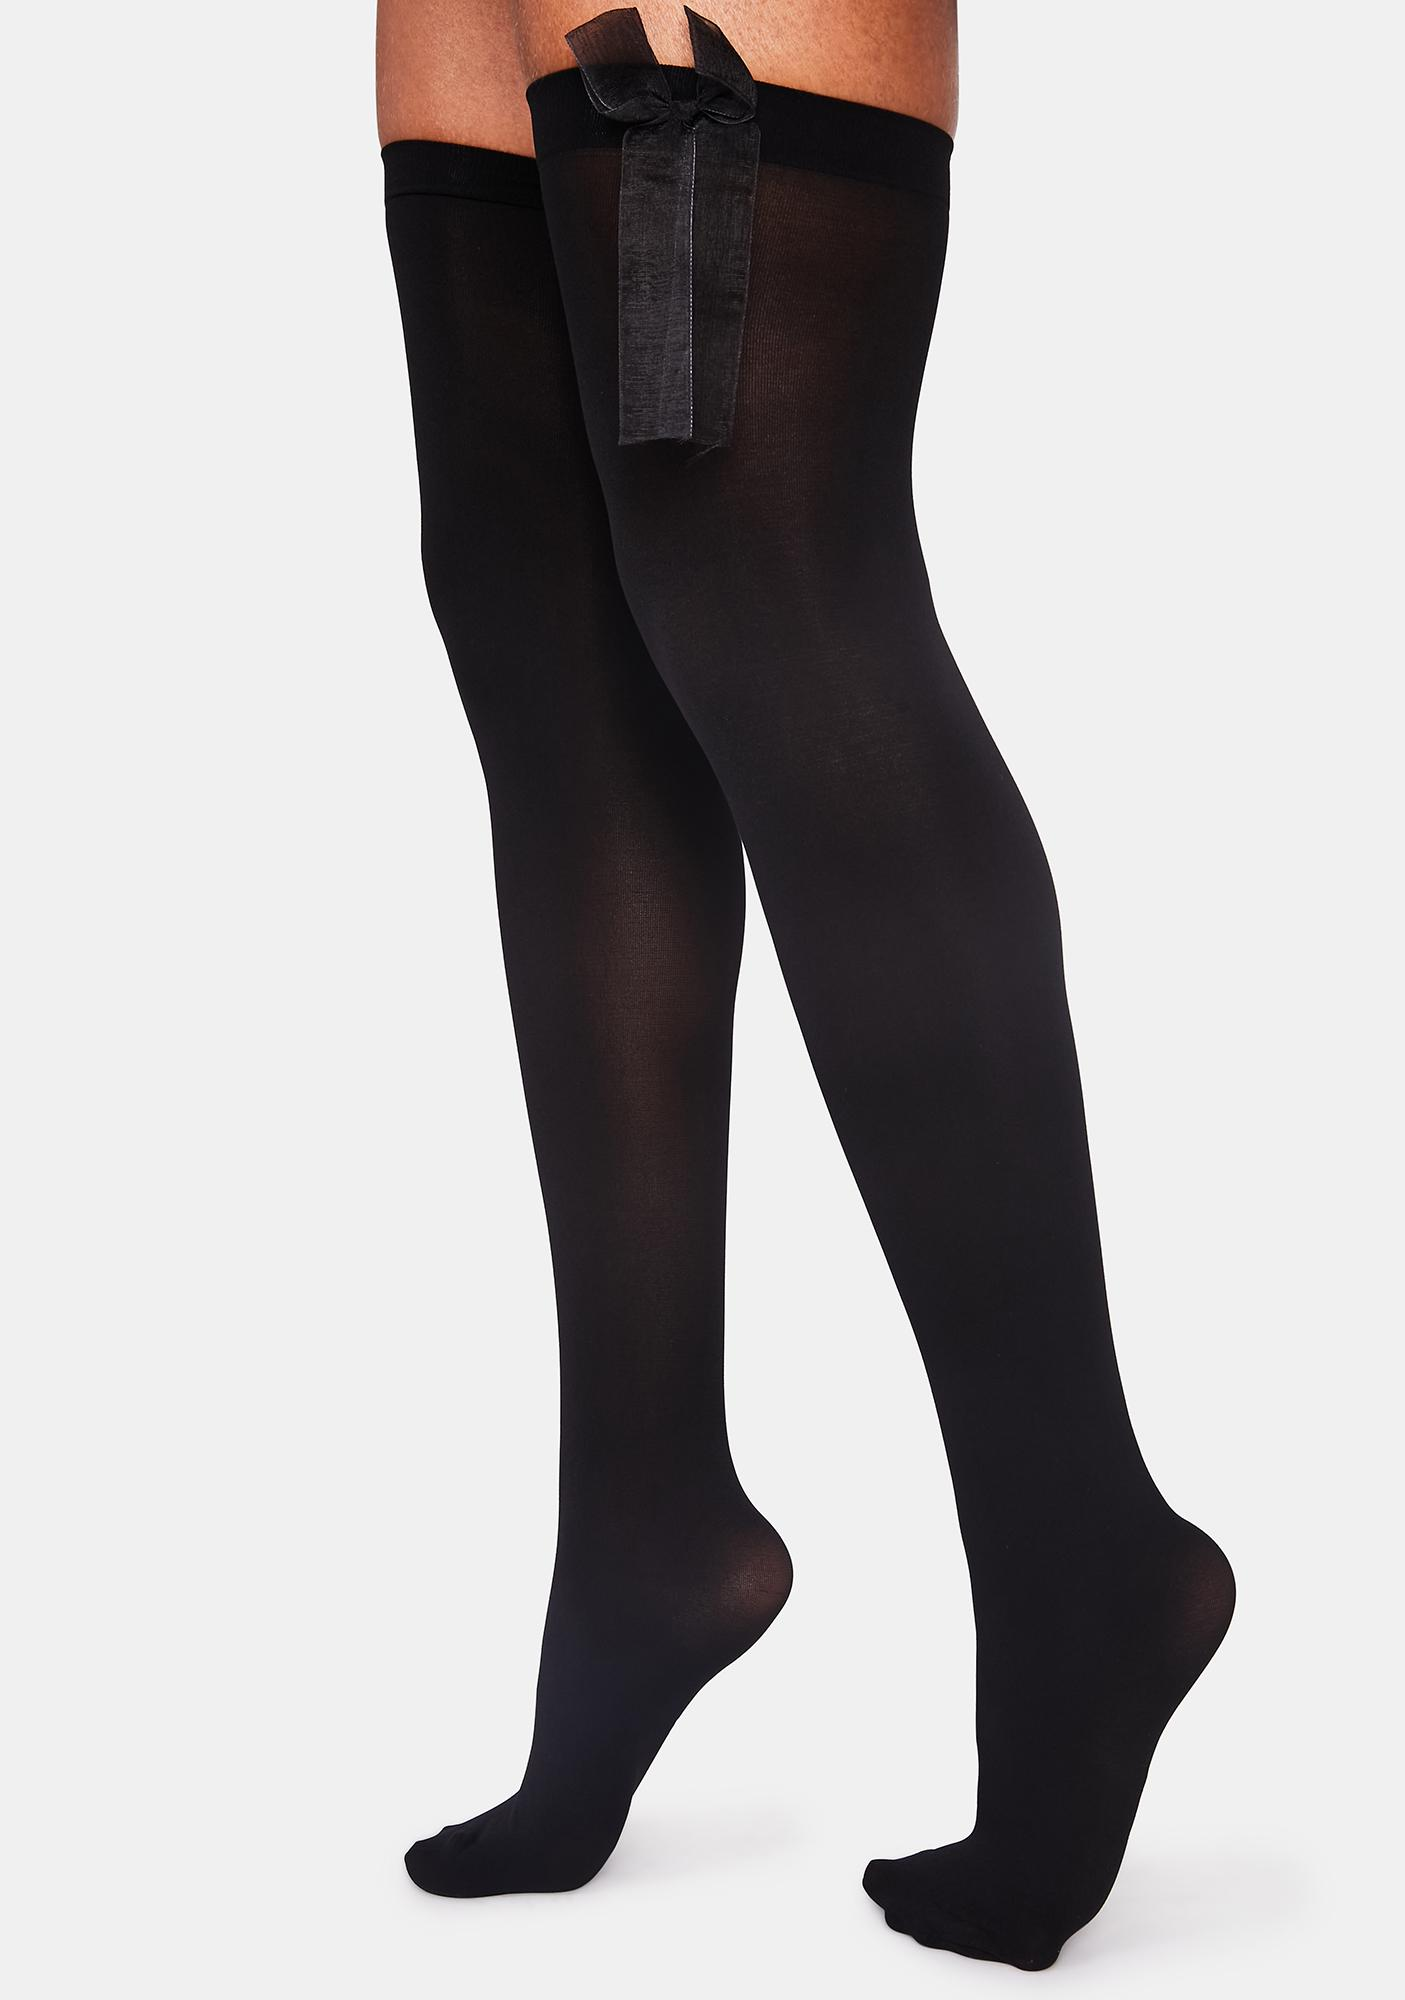 What You Need Thigh High Stockings